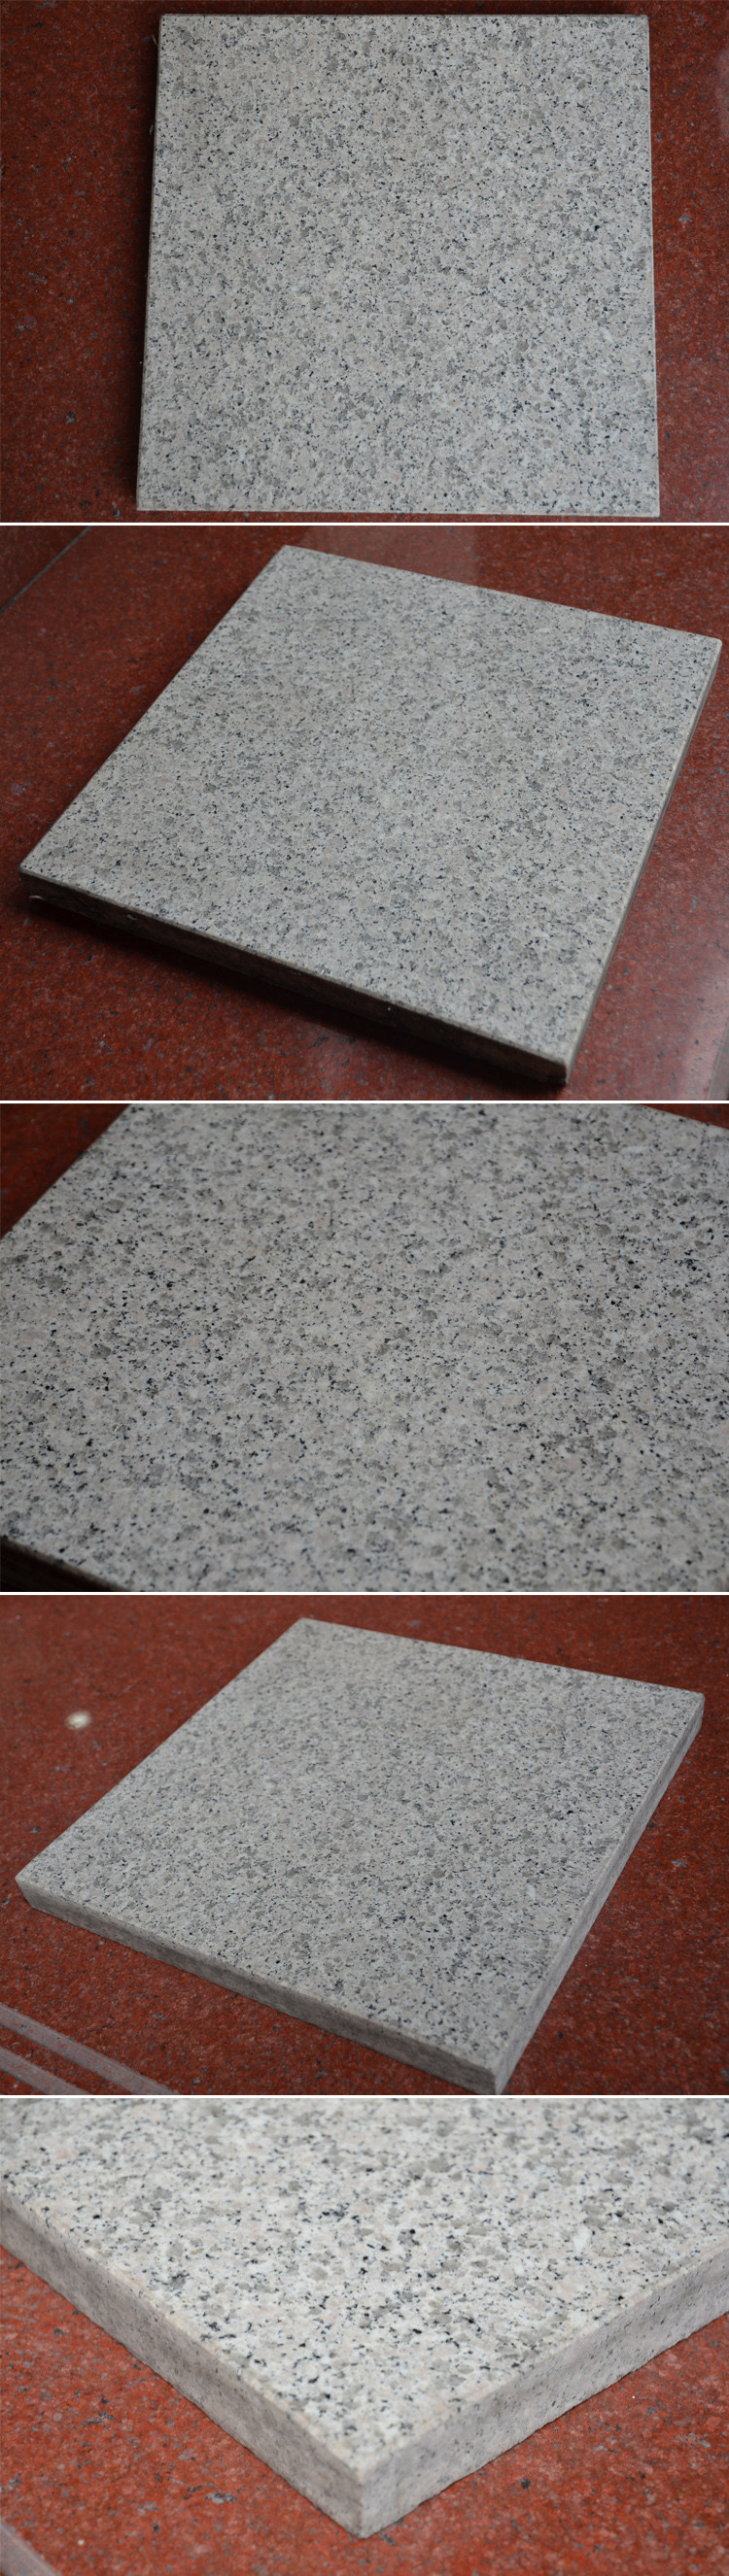 Foshan wall tileswhite graniteceramic tile granite tile flooring foshan wall tileswhite graniteceramic tile granite tile flooring tile dailygadgetfo Image collections